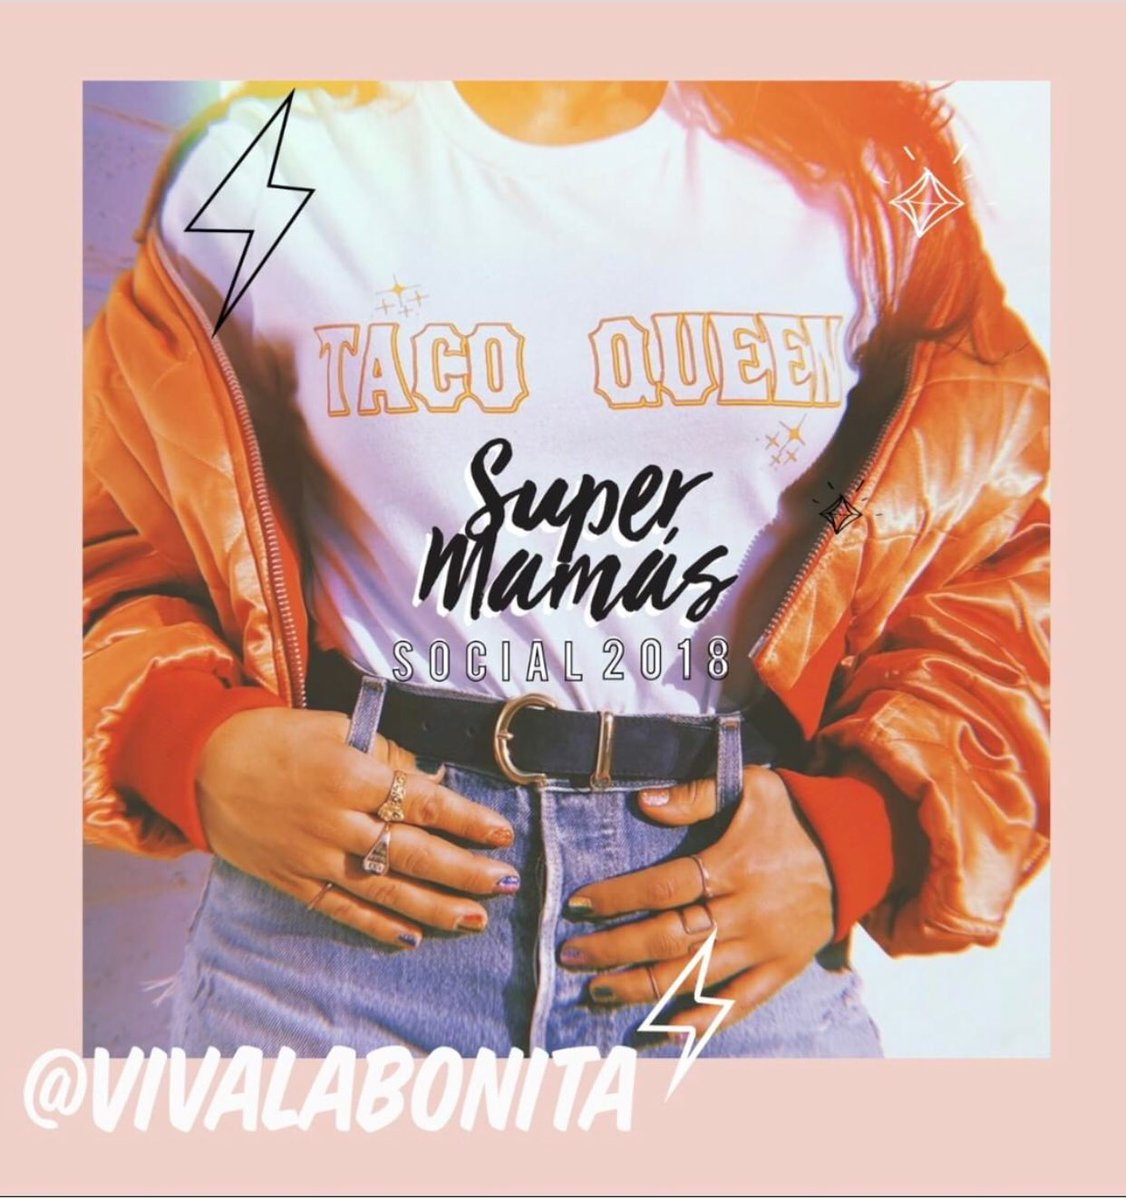 For all our #bonitasquad, don't forget to grab your favorite pieces from @VivaLasBonitas !! ❤️❤️ #SMSocial18